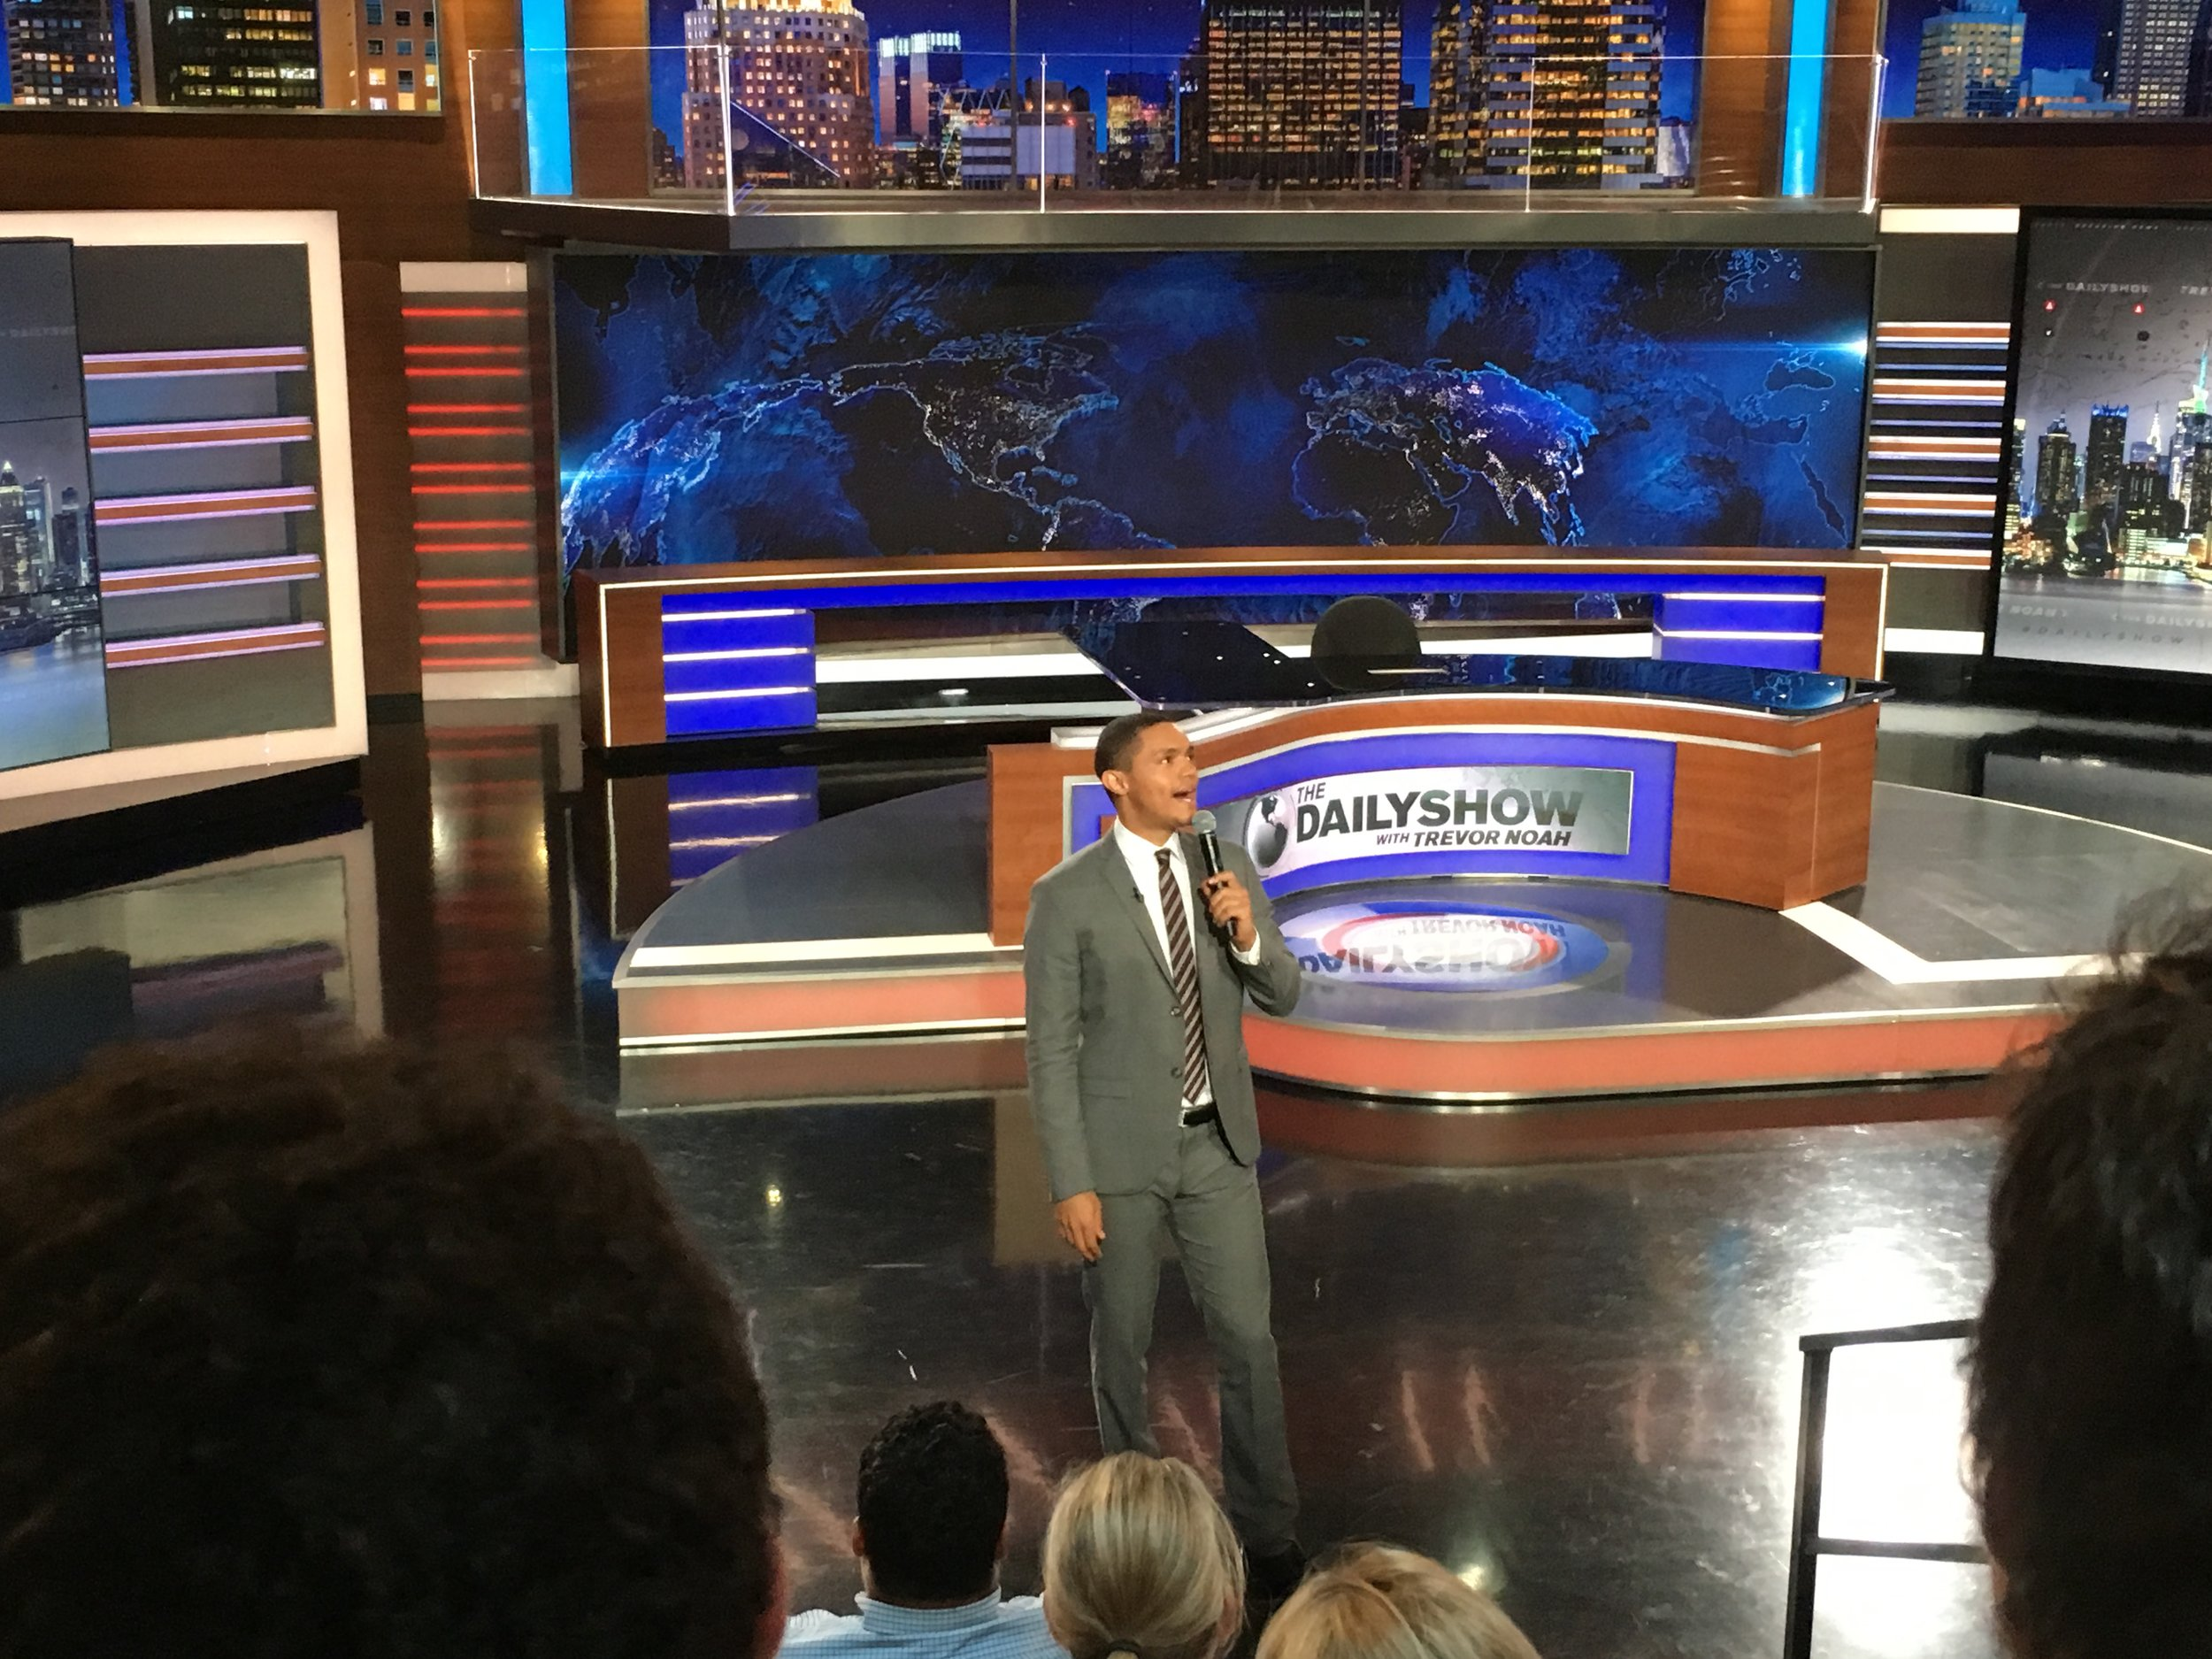 Things unlikely to happen elsewhere: That time I got tickets to day #3 of Trevor Noah's Daily Show